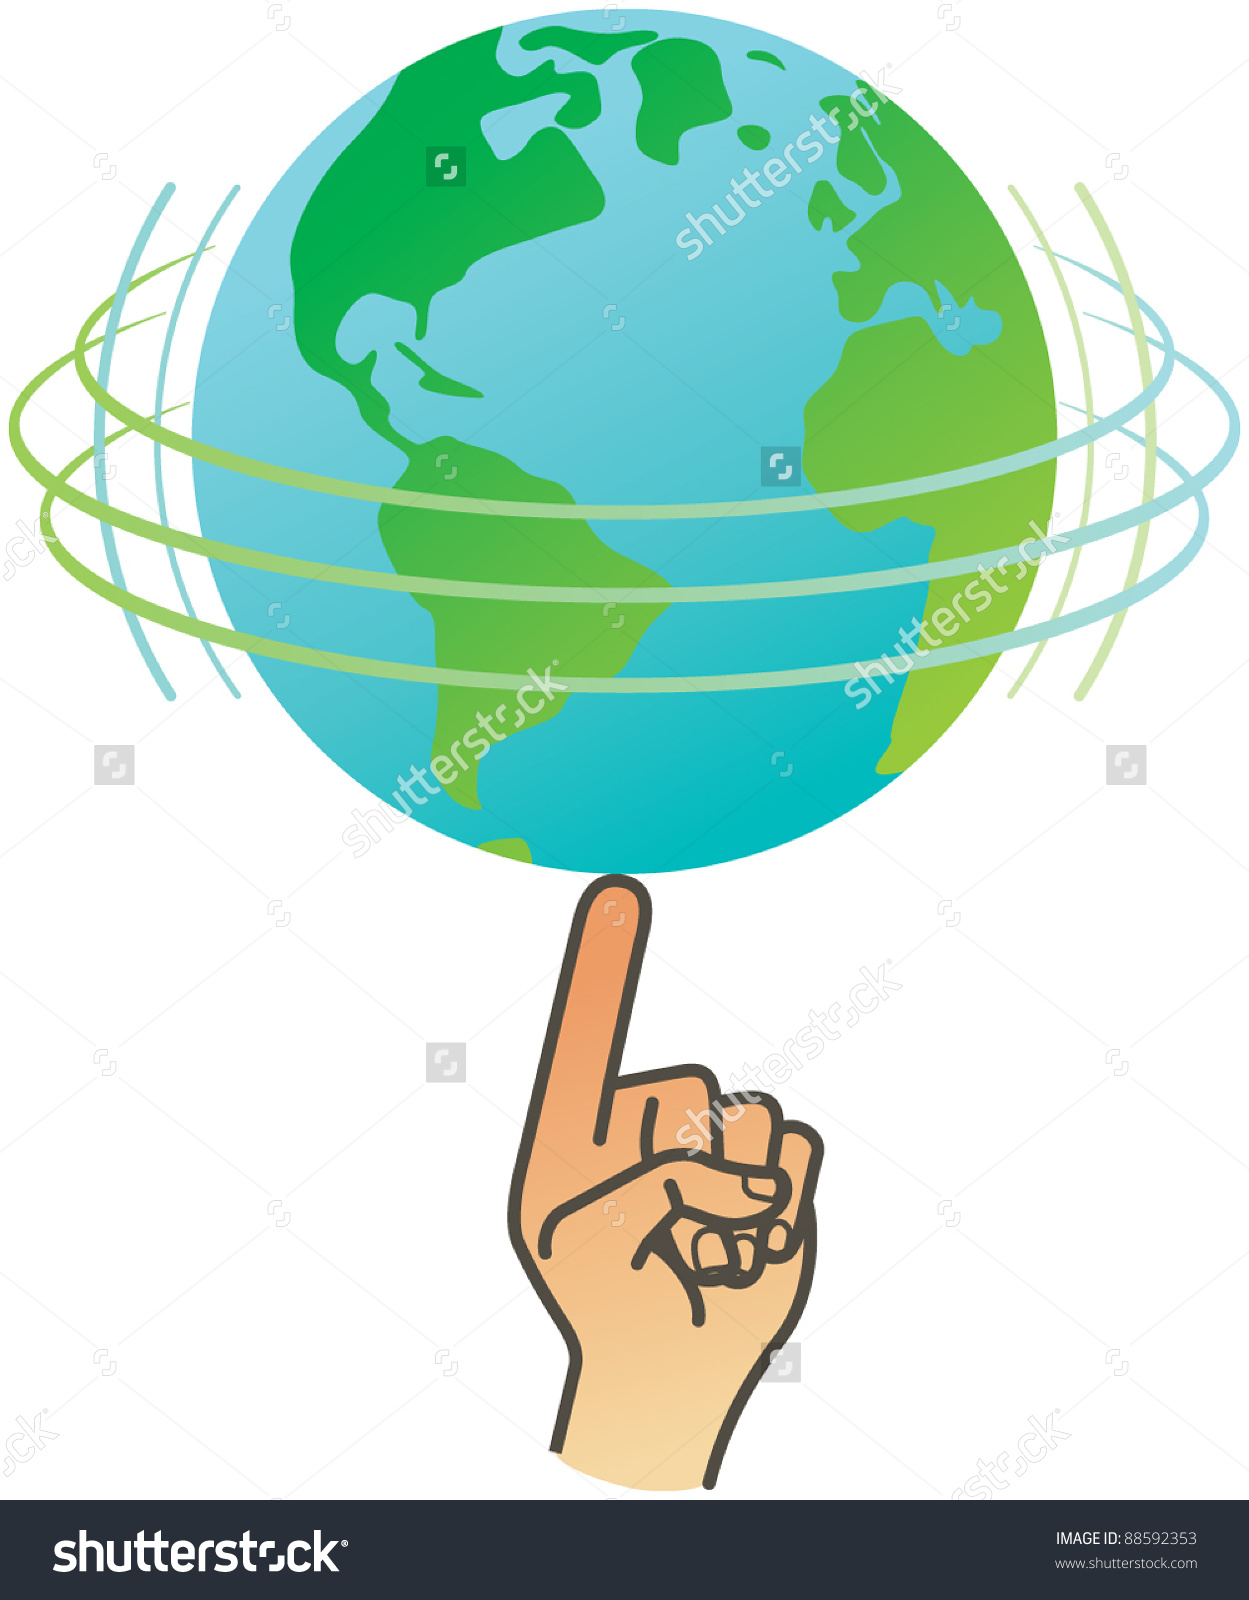 Turning globe clipart clipart library stock Earth rotation clipart - ClipartFest clipart library stock